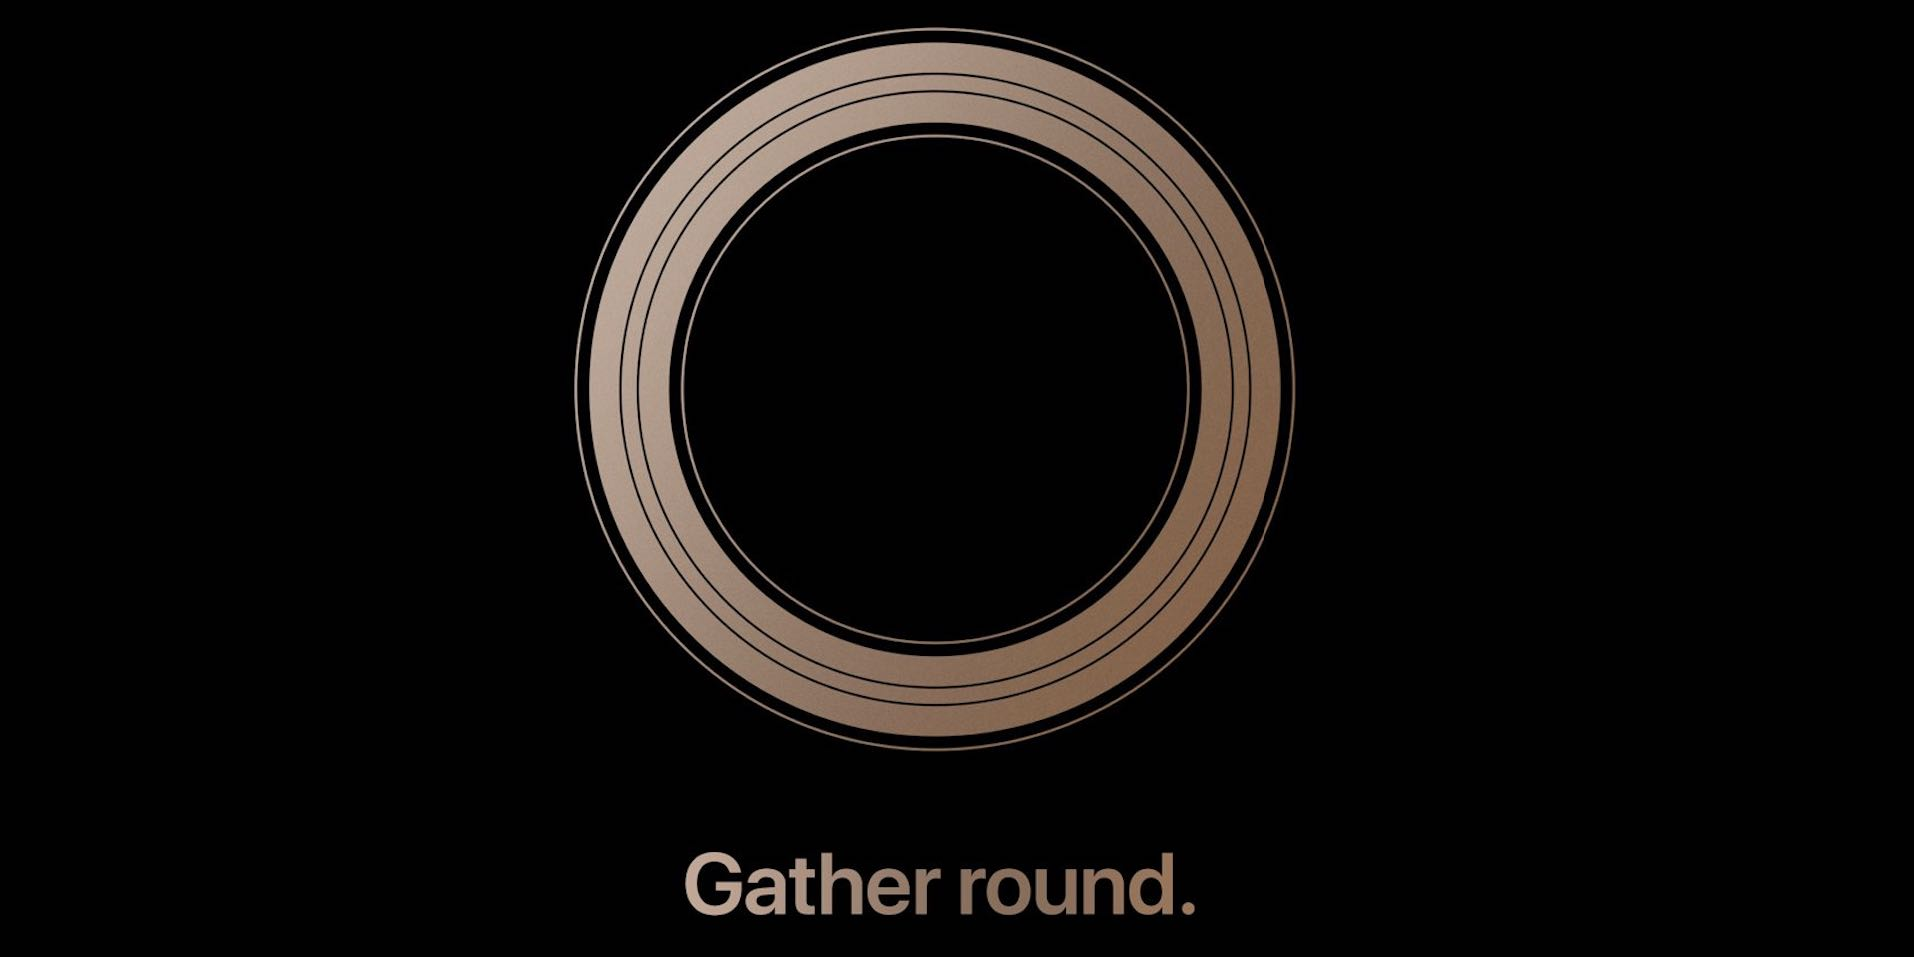 Apple's 'Gather Round' keynote now available in full on YouTube